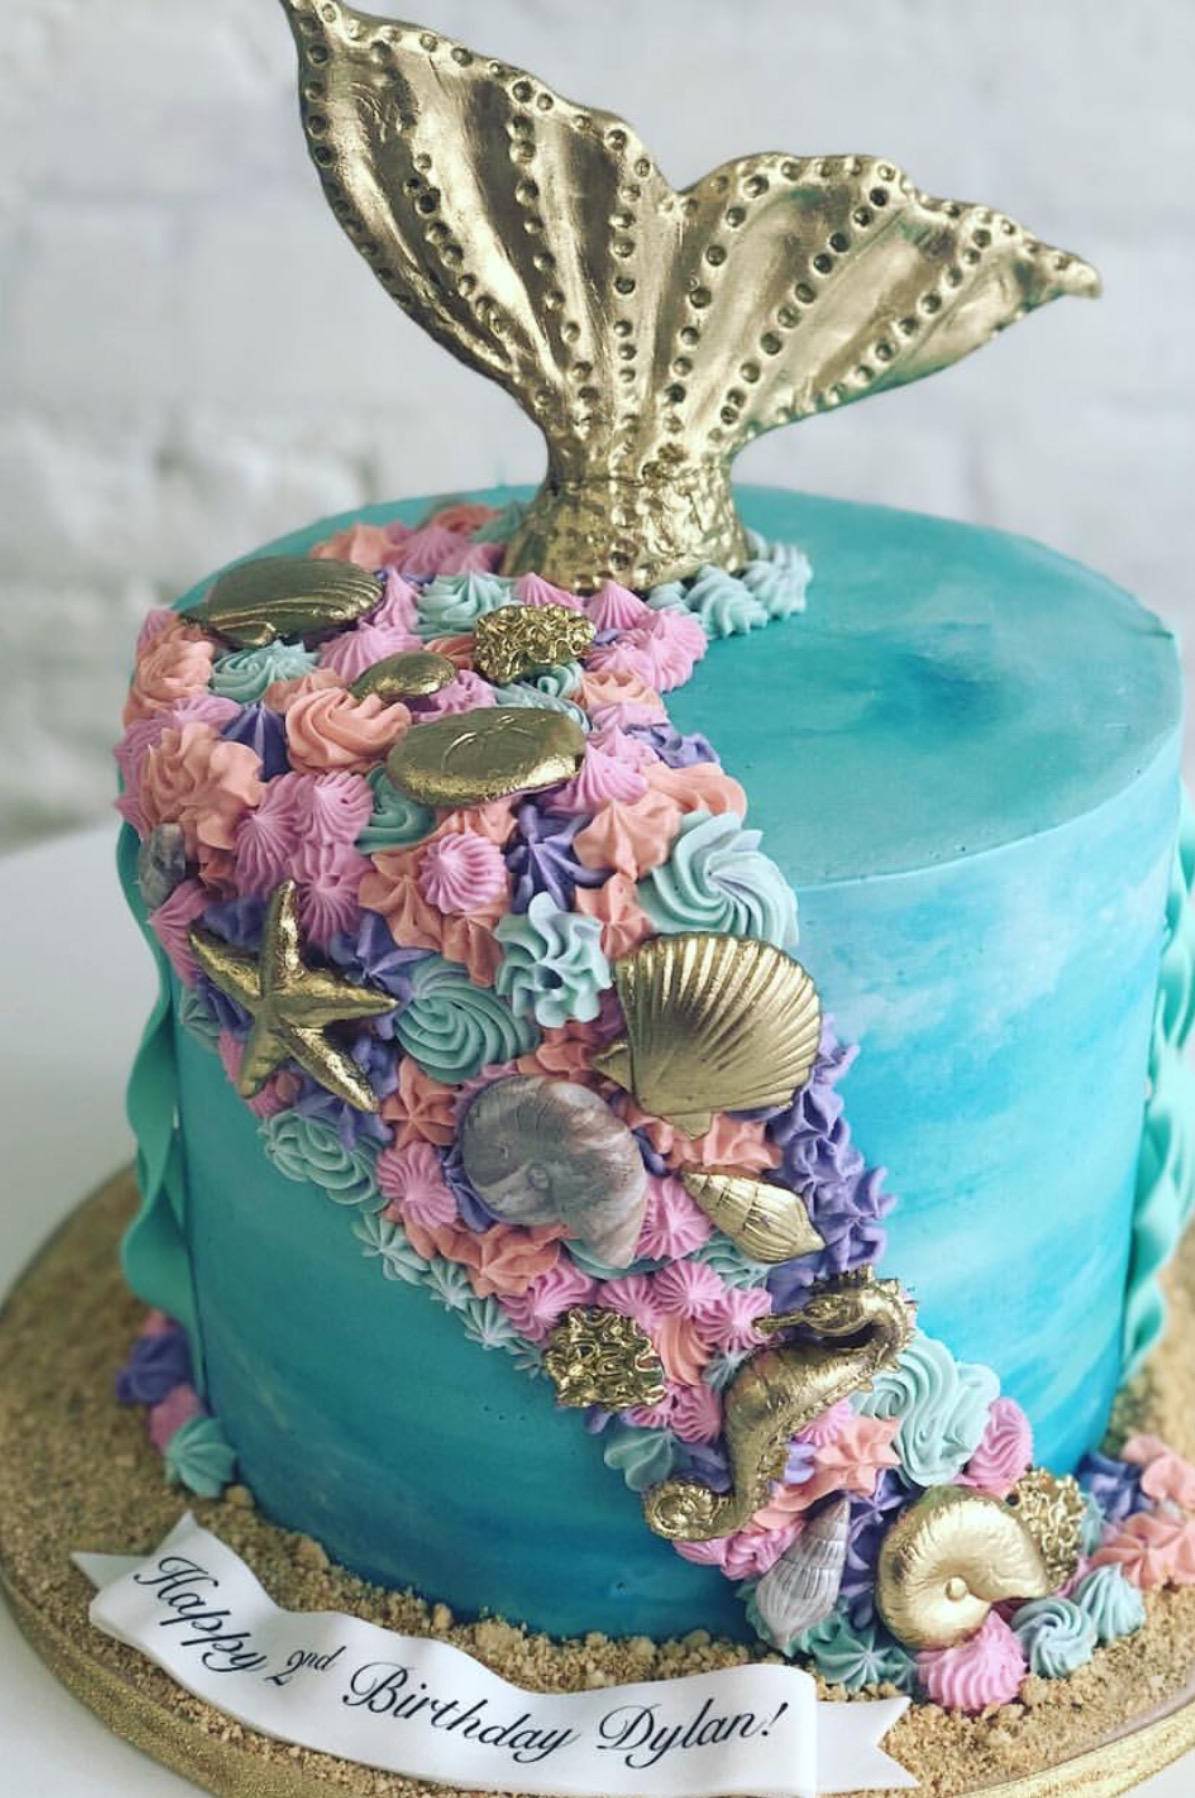 Awesome Mermaid Pool Party Birthday Cake Wild Berries Bakery And Cafe Funny Birthday Cards Online Inifodamsfinfo